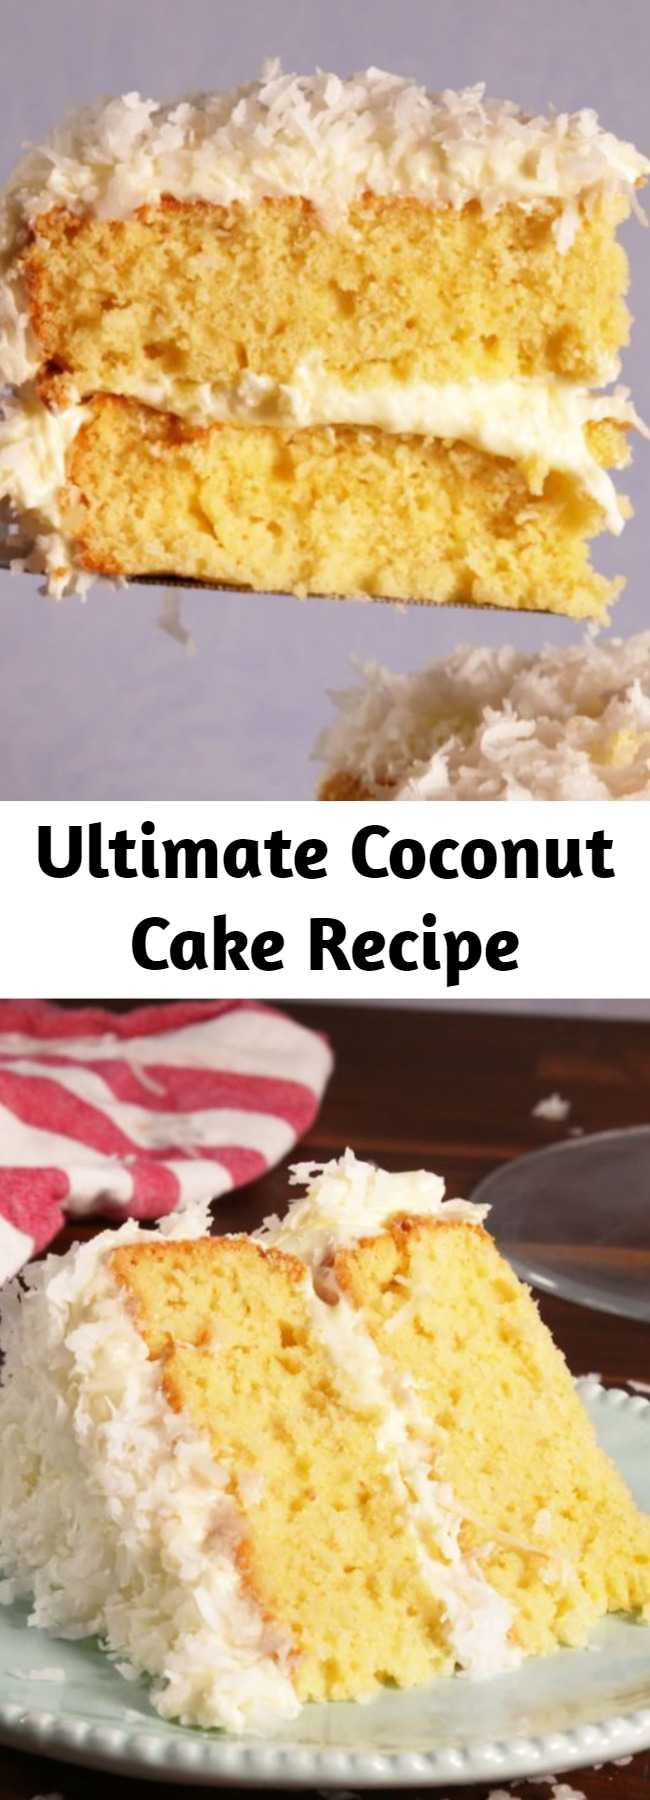 Ultimate Coconut Cake Recipe - Check out this recipe for the absolute best coconut layer cake! This cake gets its amazing flavor from vanilla and almond extracts and, of course, shredded coconut.